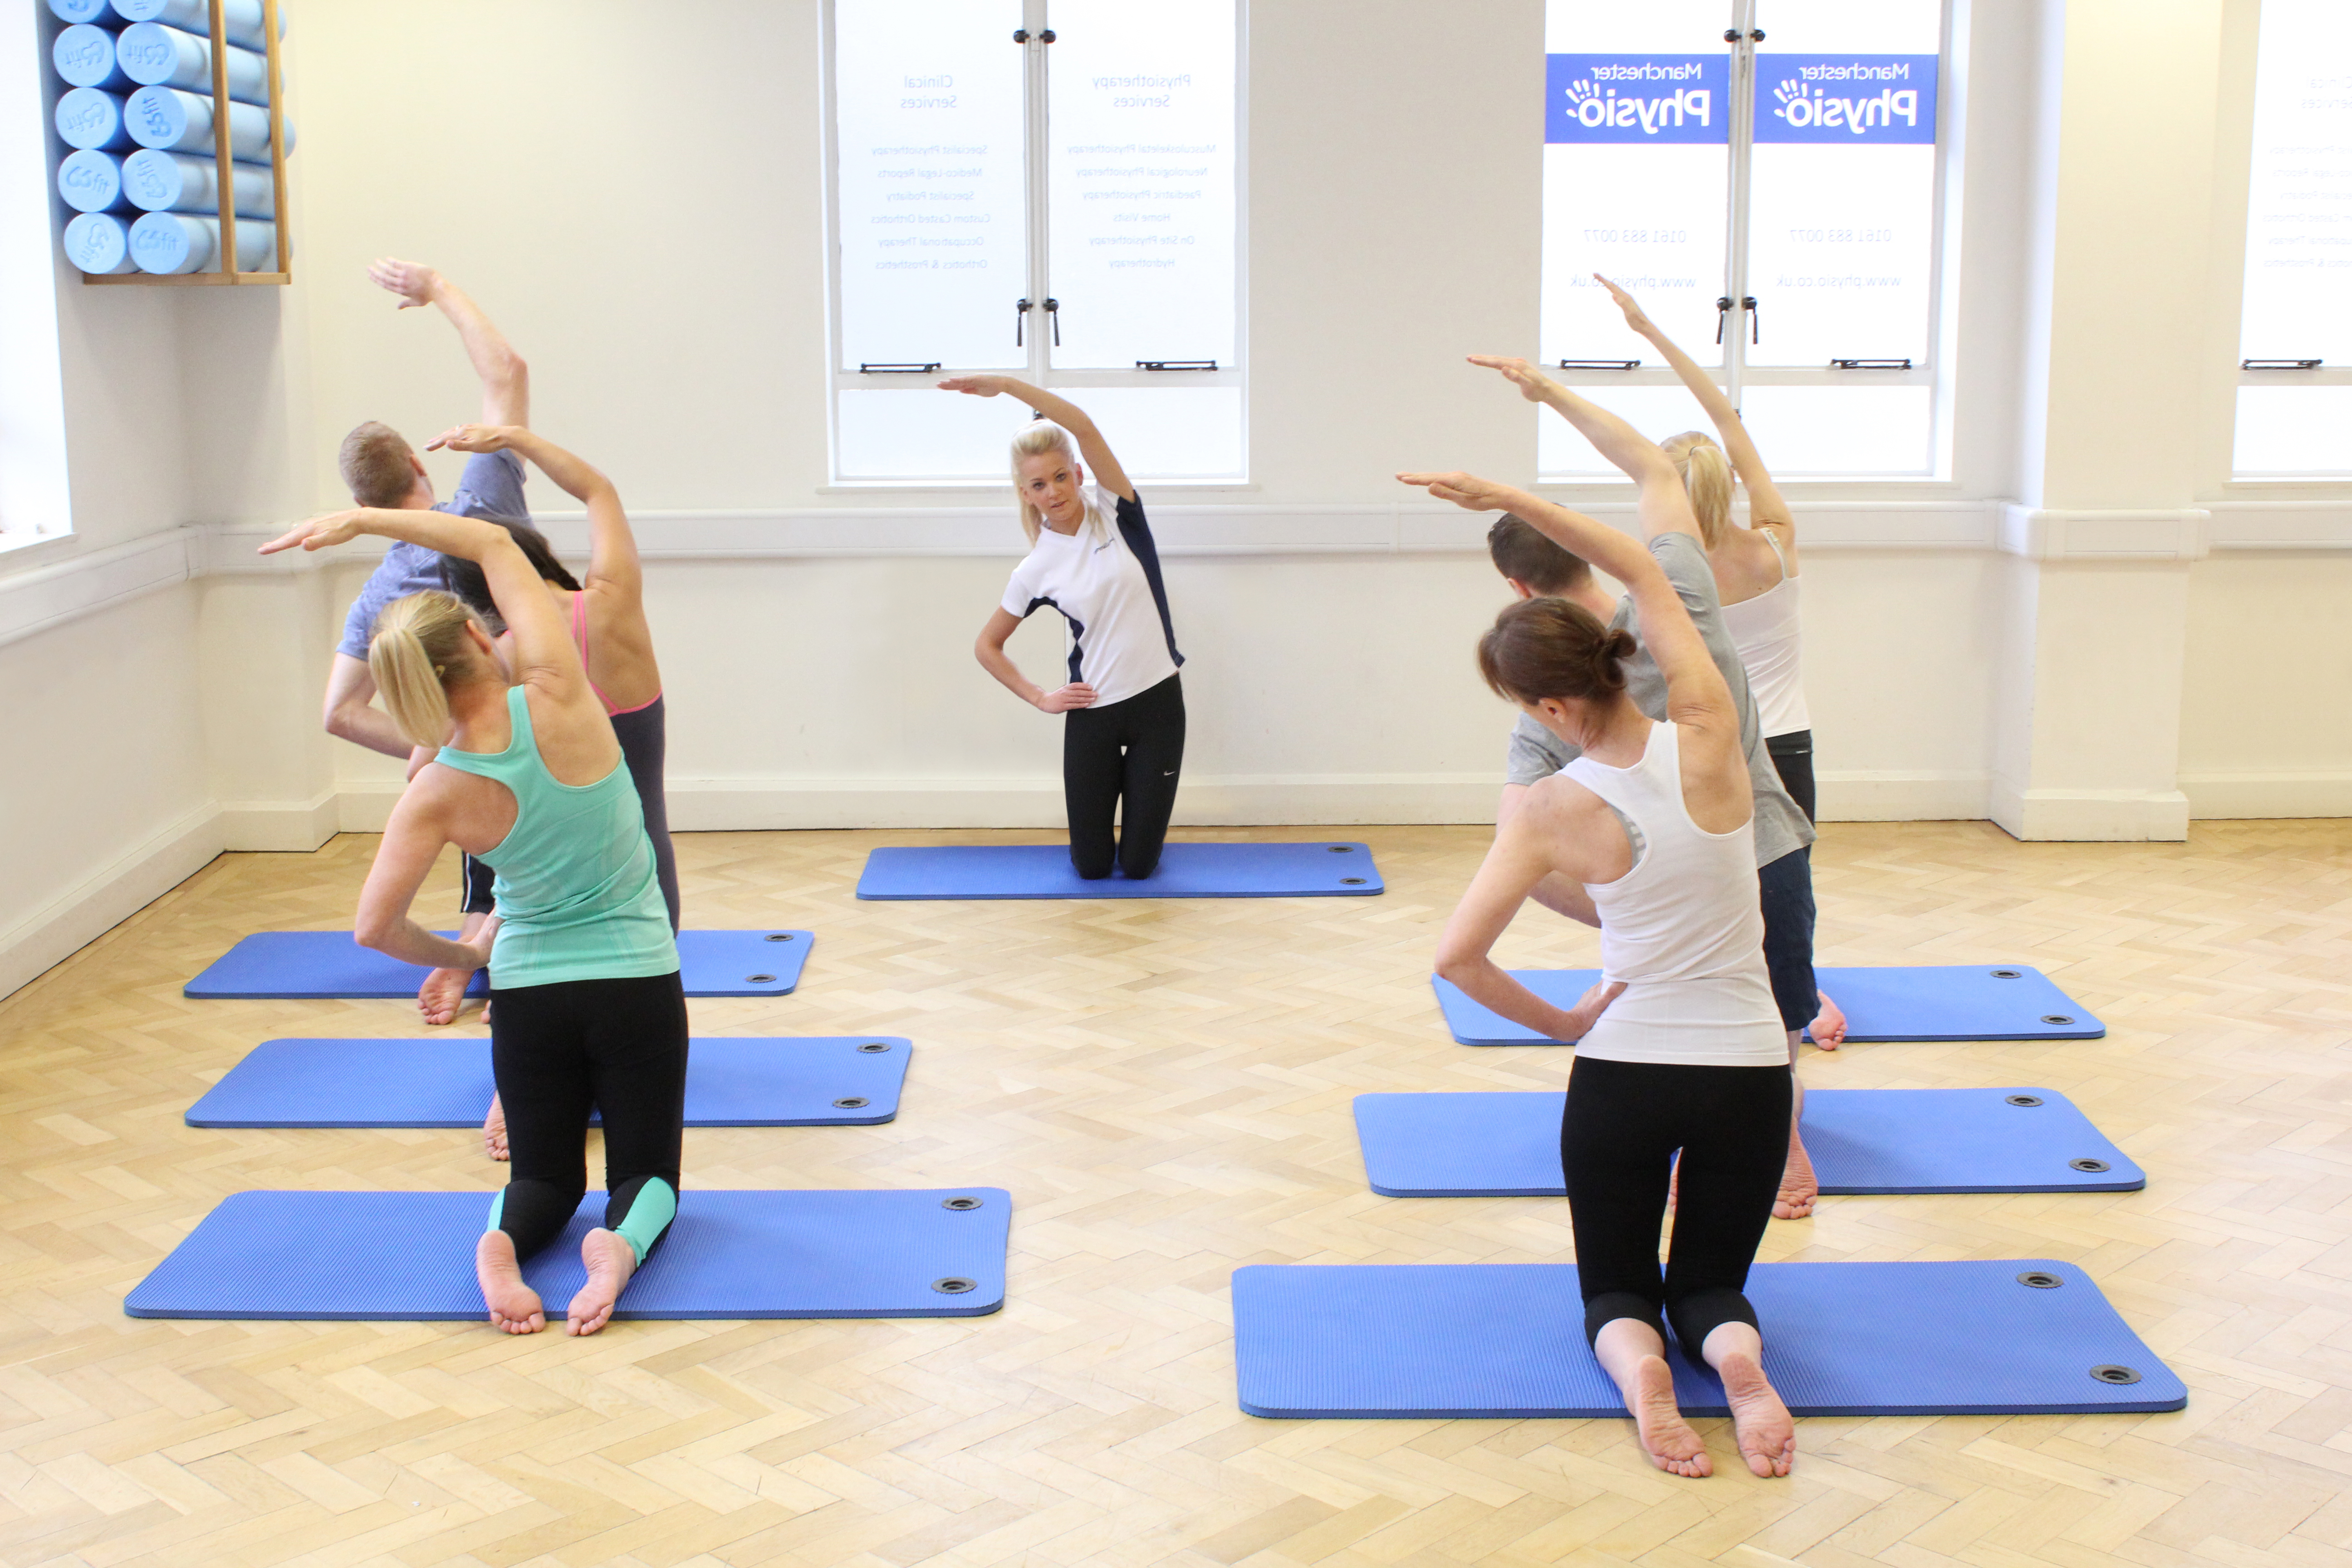 Pilates exercises to improve your stability